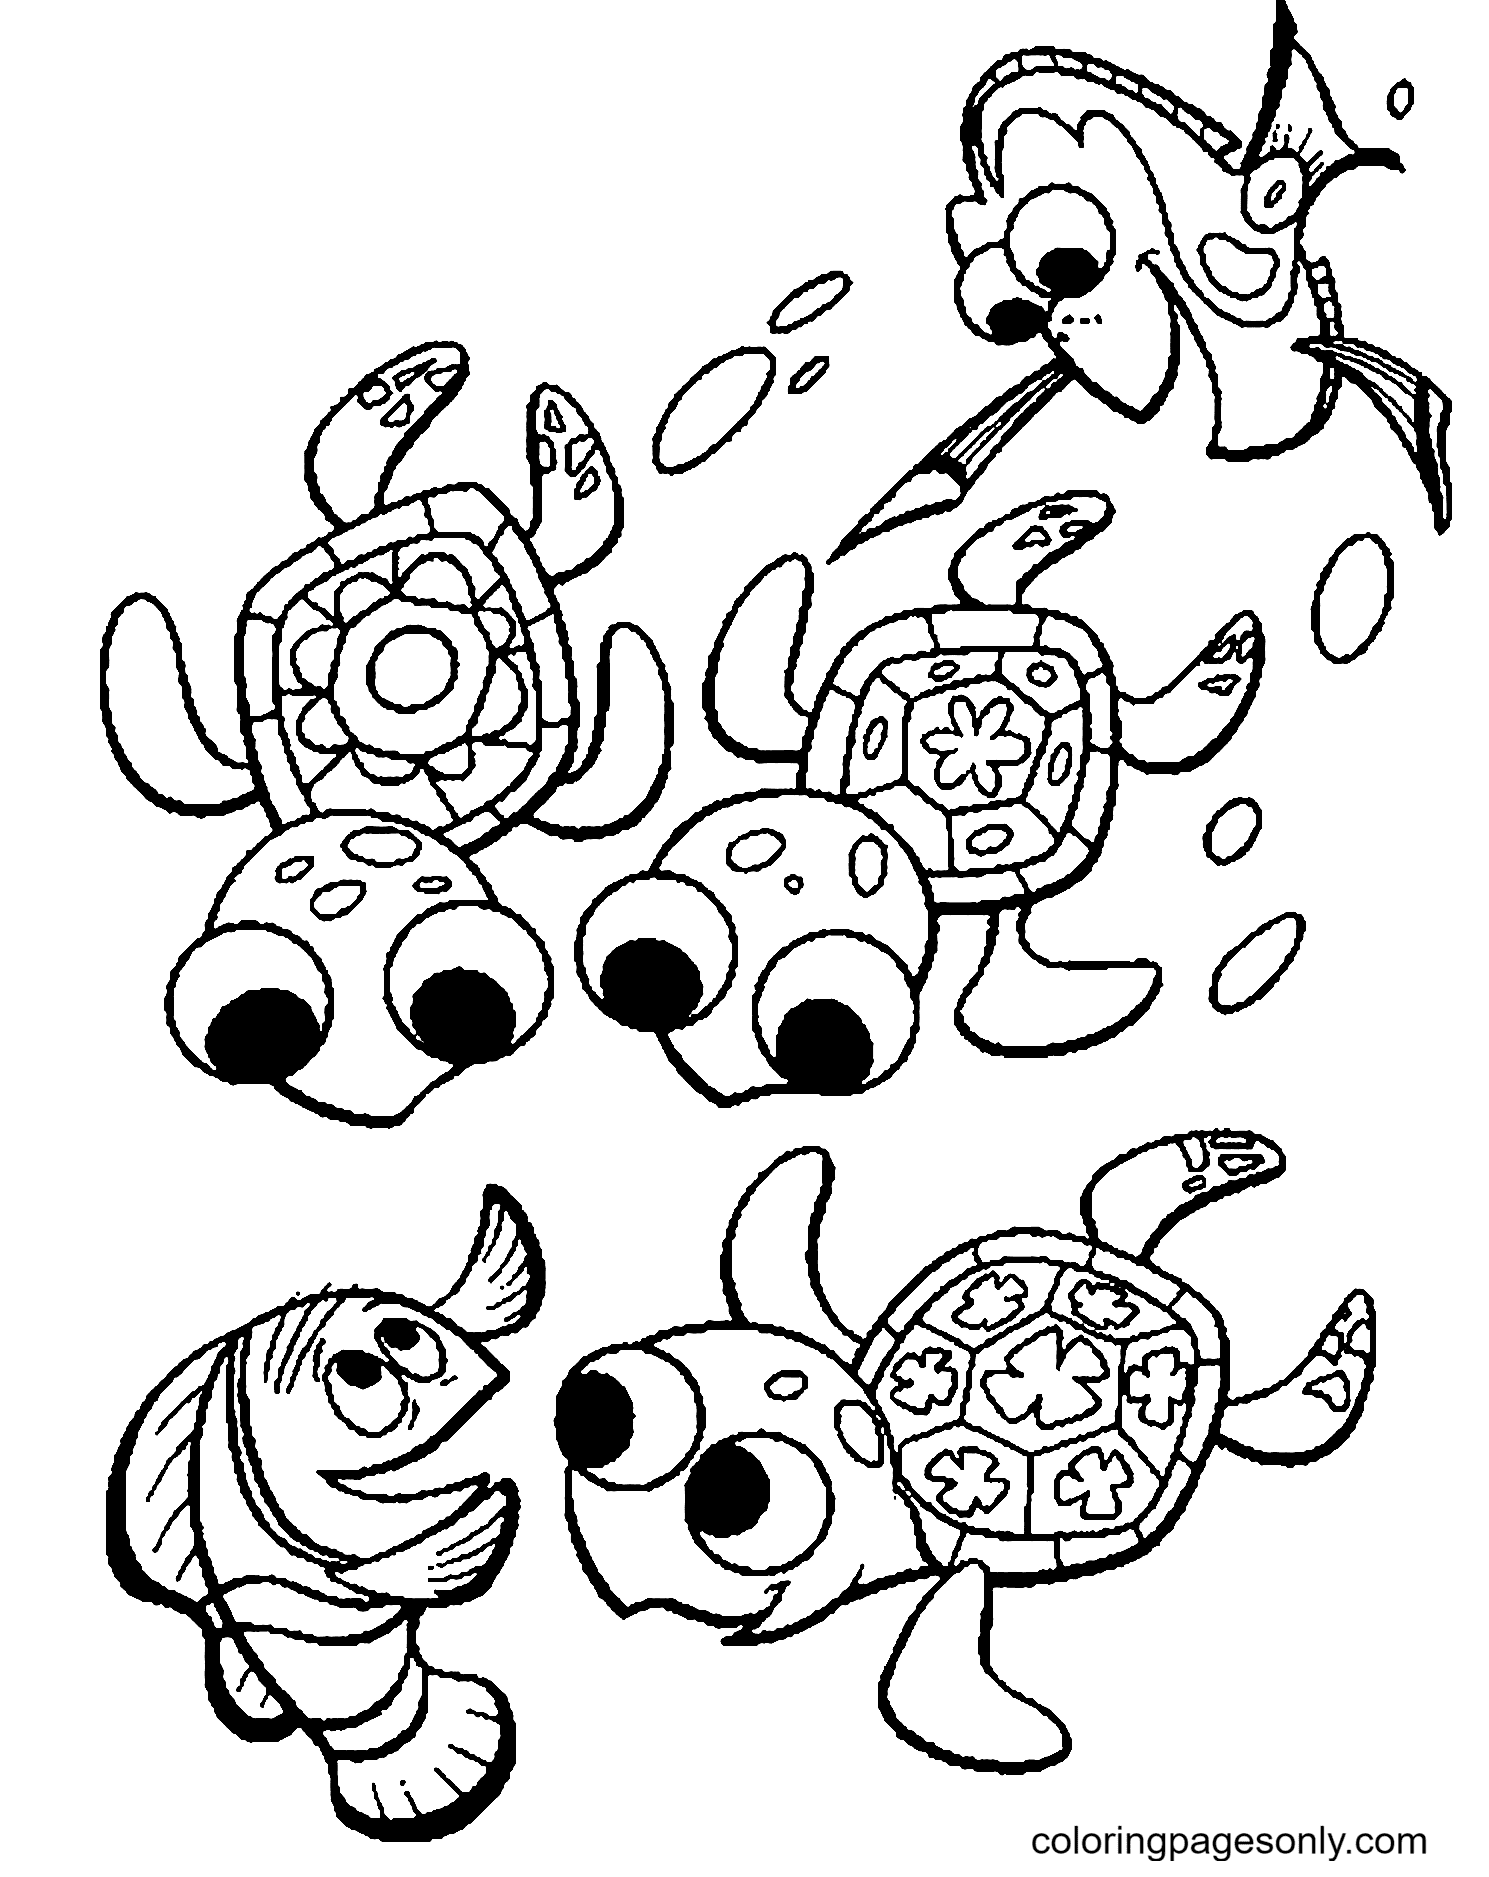 Baby Turtles and Baby Fishes Coloring Page